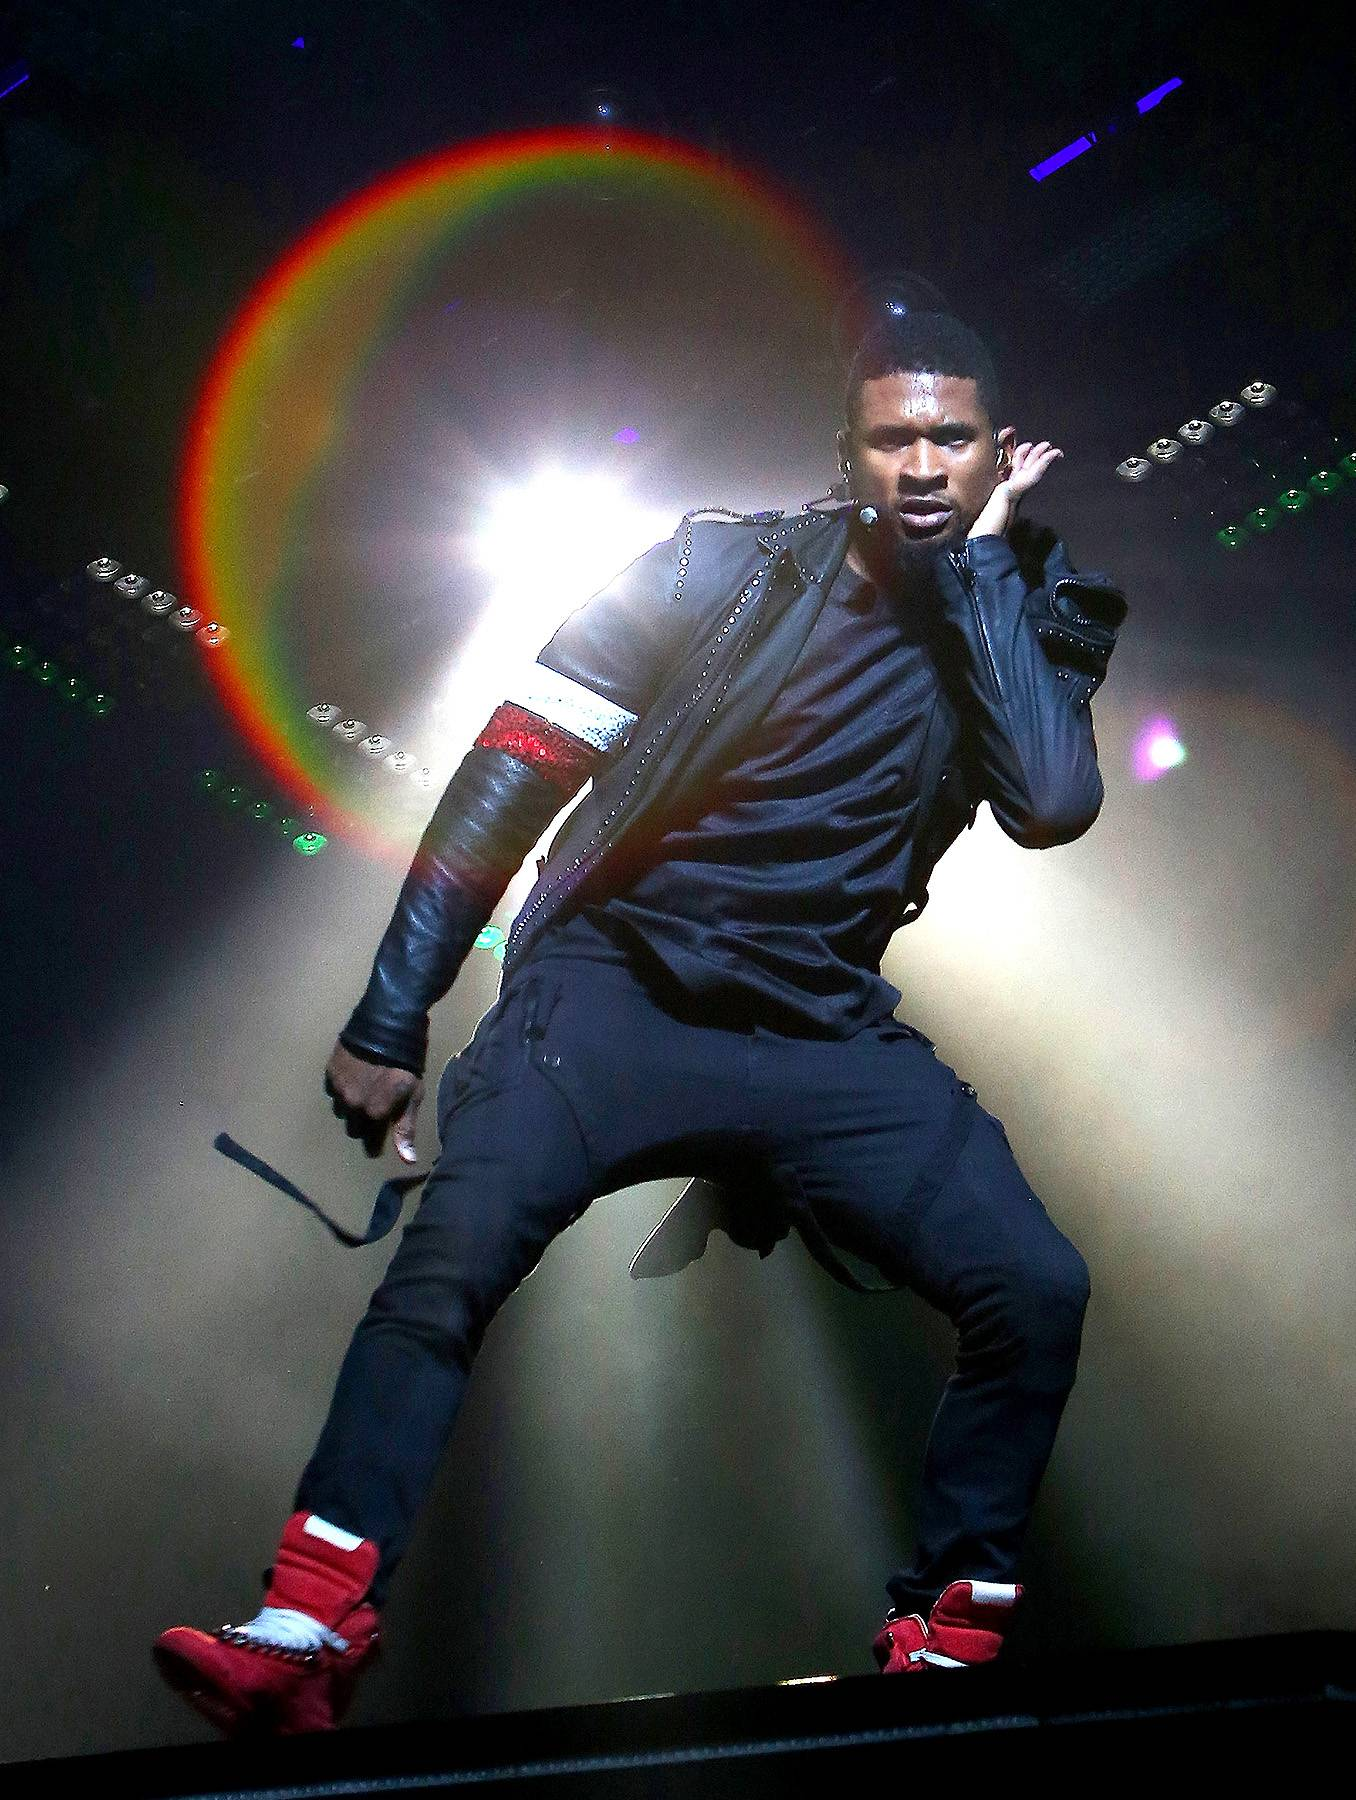 111214-celebs-out-usher-performs.jpg